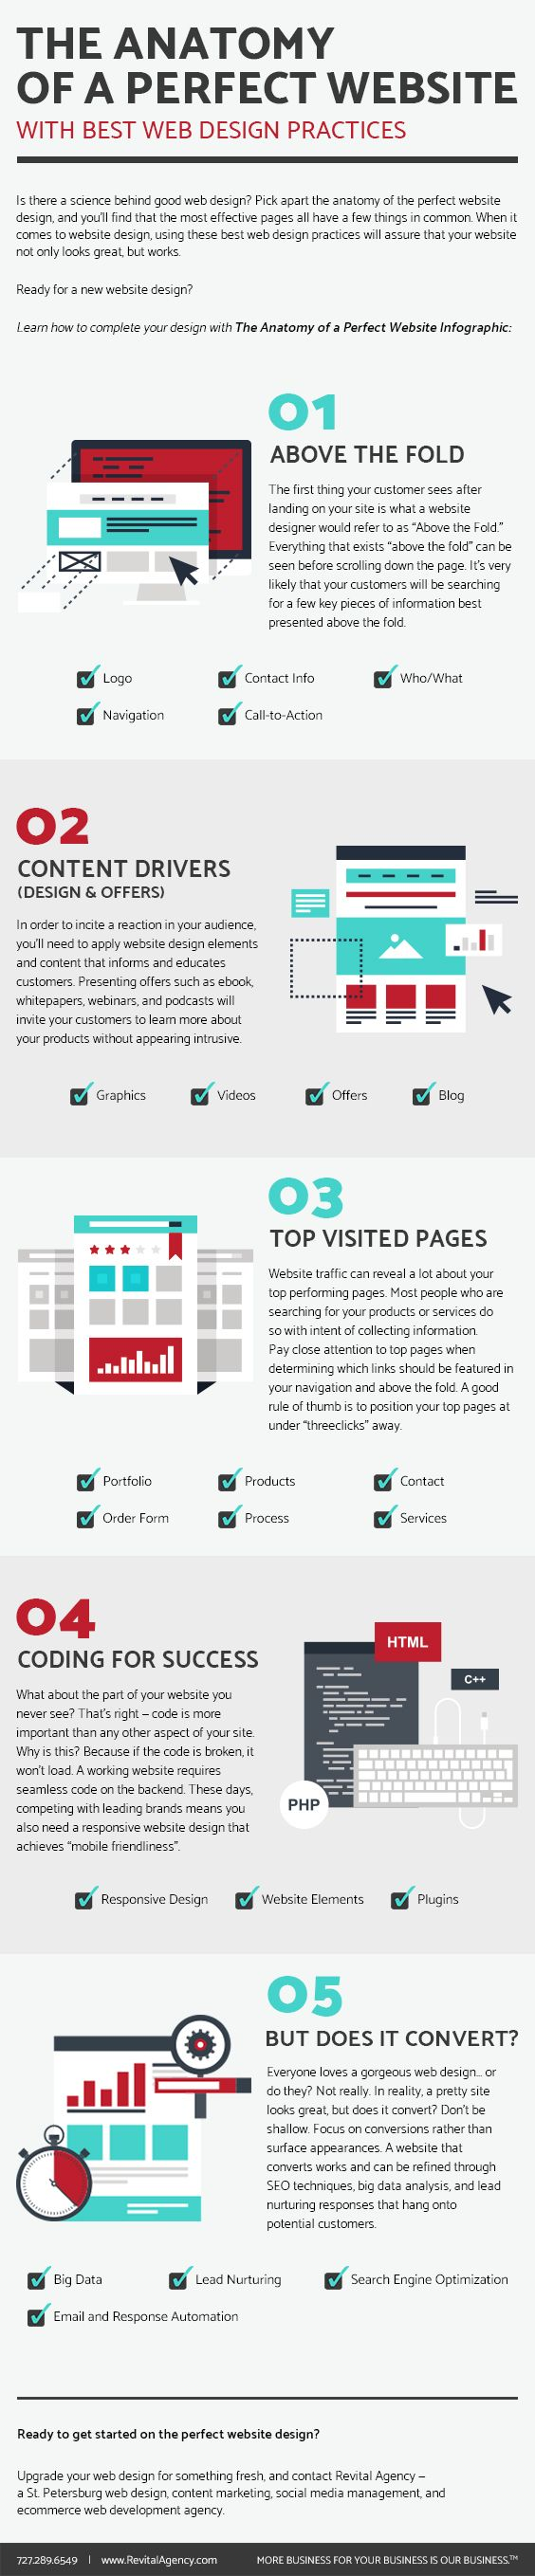 The Anatomy Of A Perfect Website With Best Web Design Practices Best Web Design Web Design Infographic Web Design